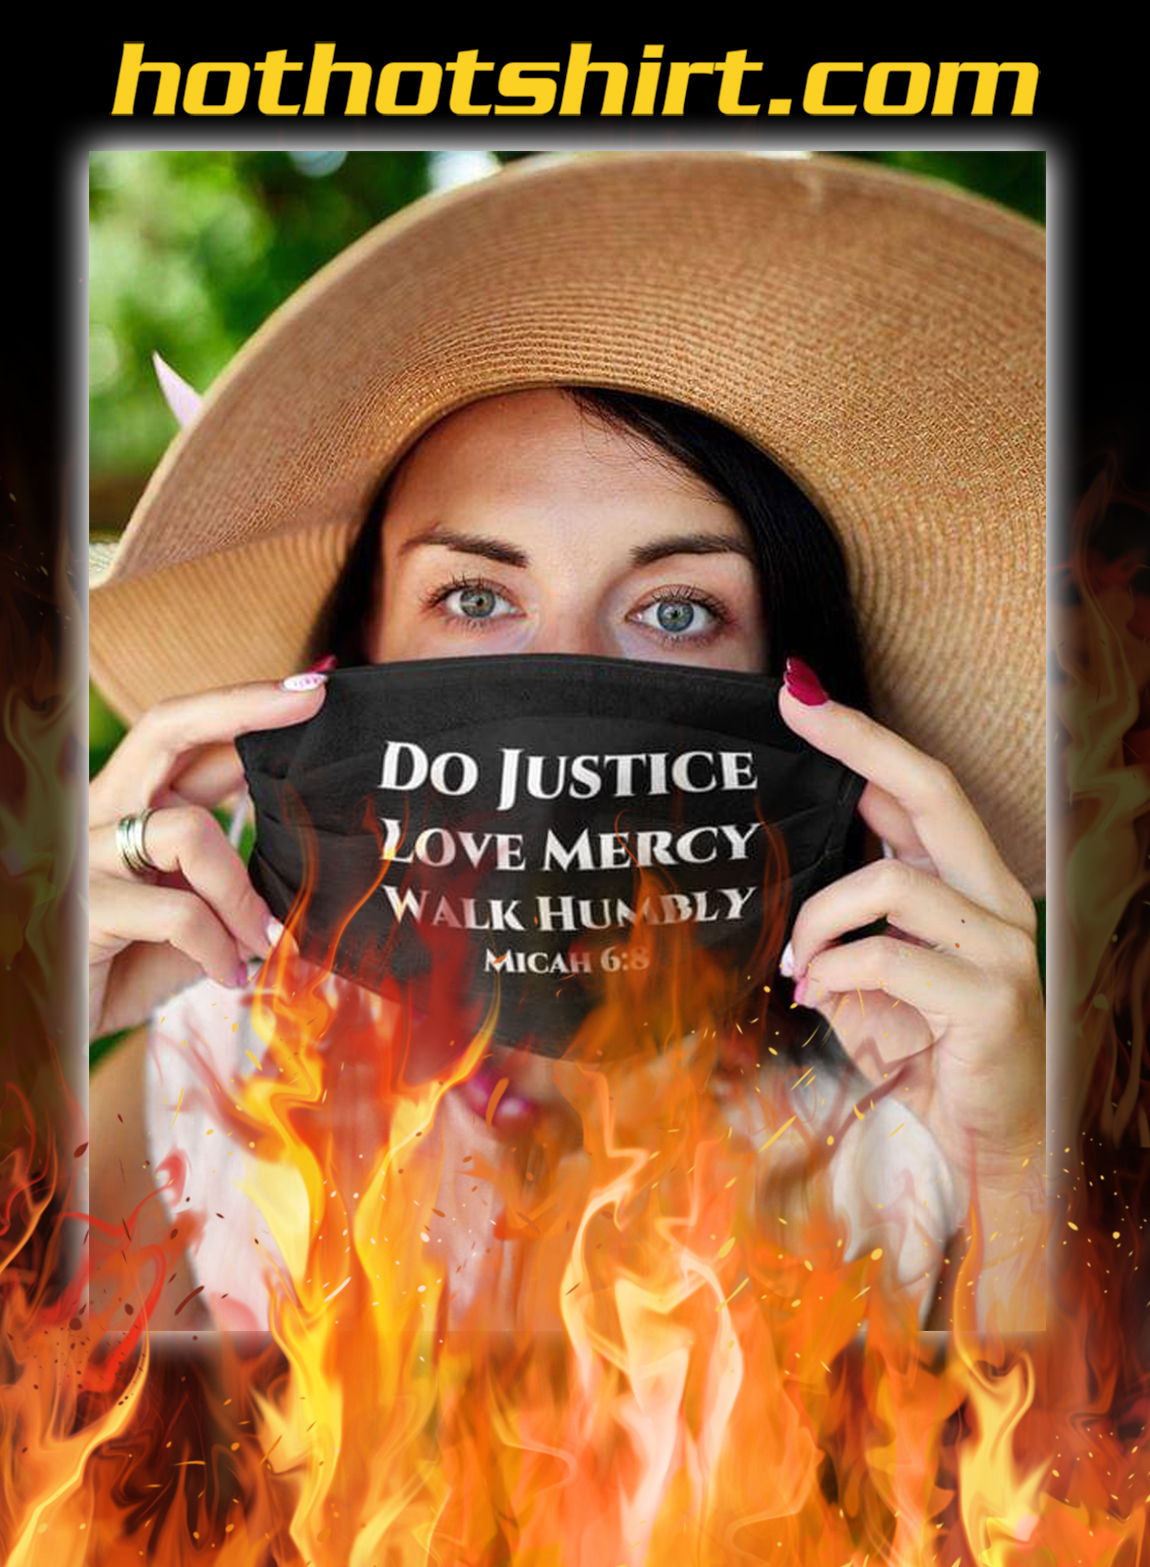 Do justice love mercy walk humbly micah 6-8 face mask - pic 1